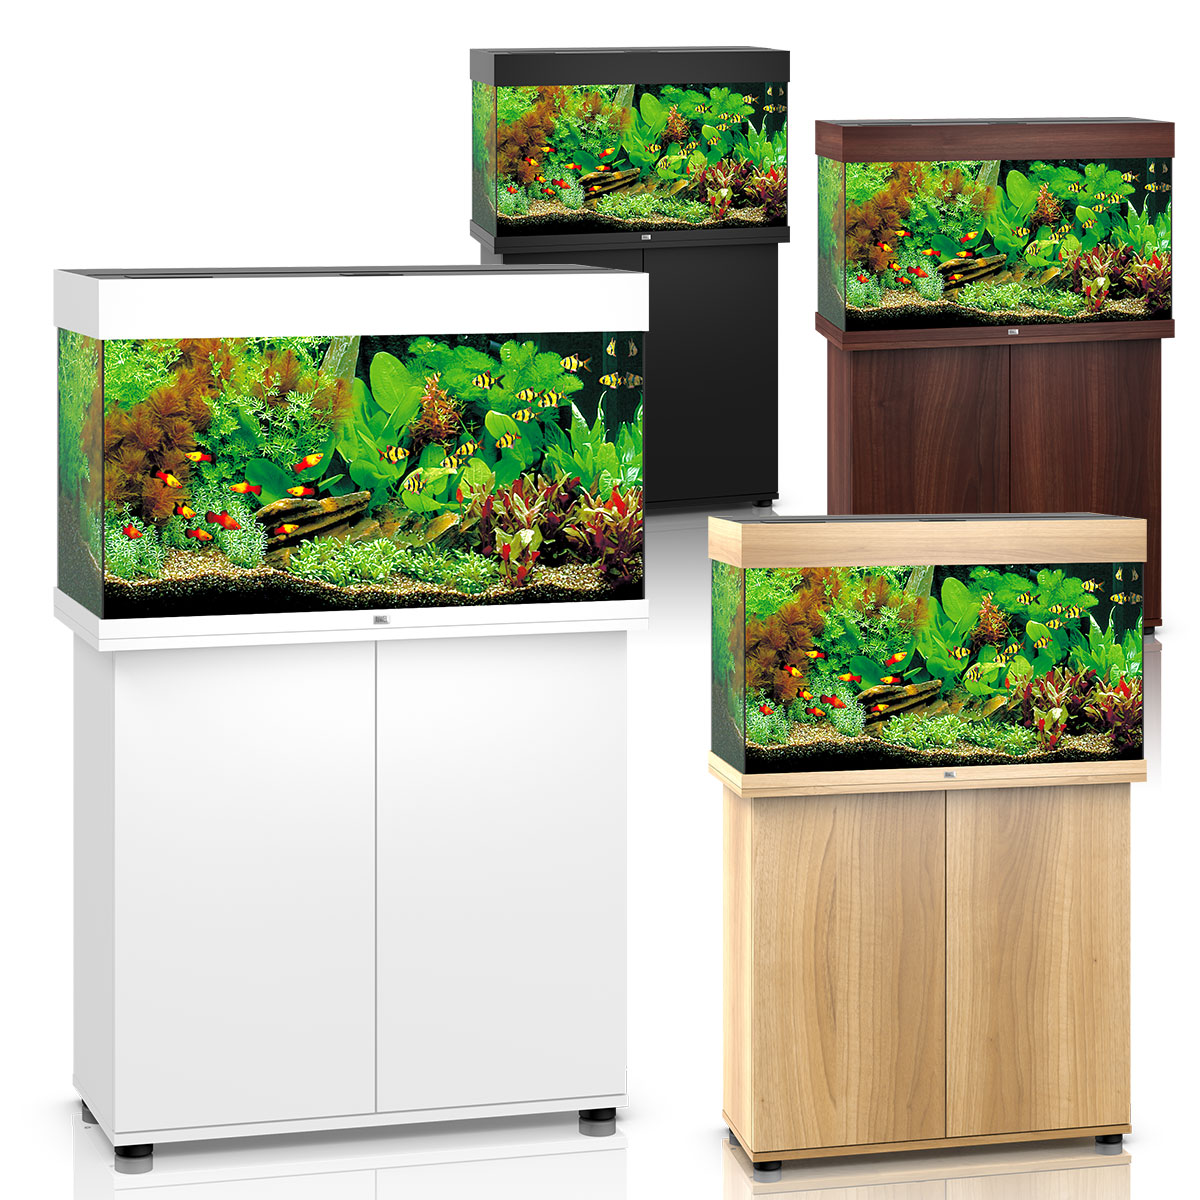 juwel rio 125 led komplett aquarium mit unterschrank sbx. Black Bedroom Furniture Sets. Home Design Ideas